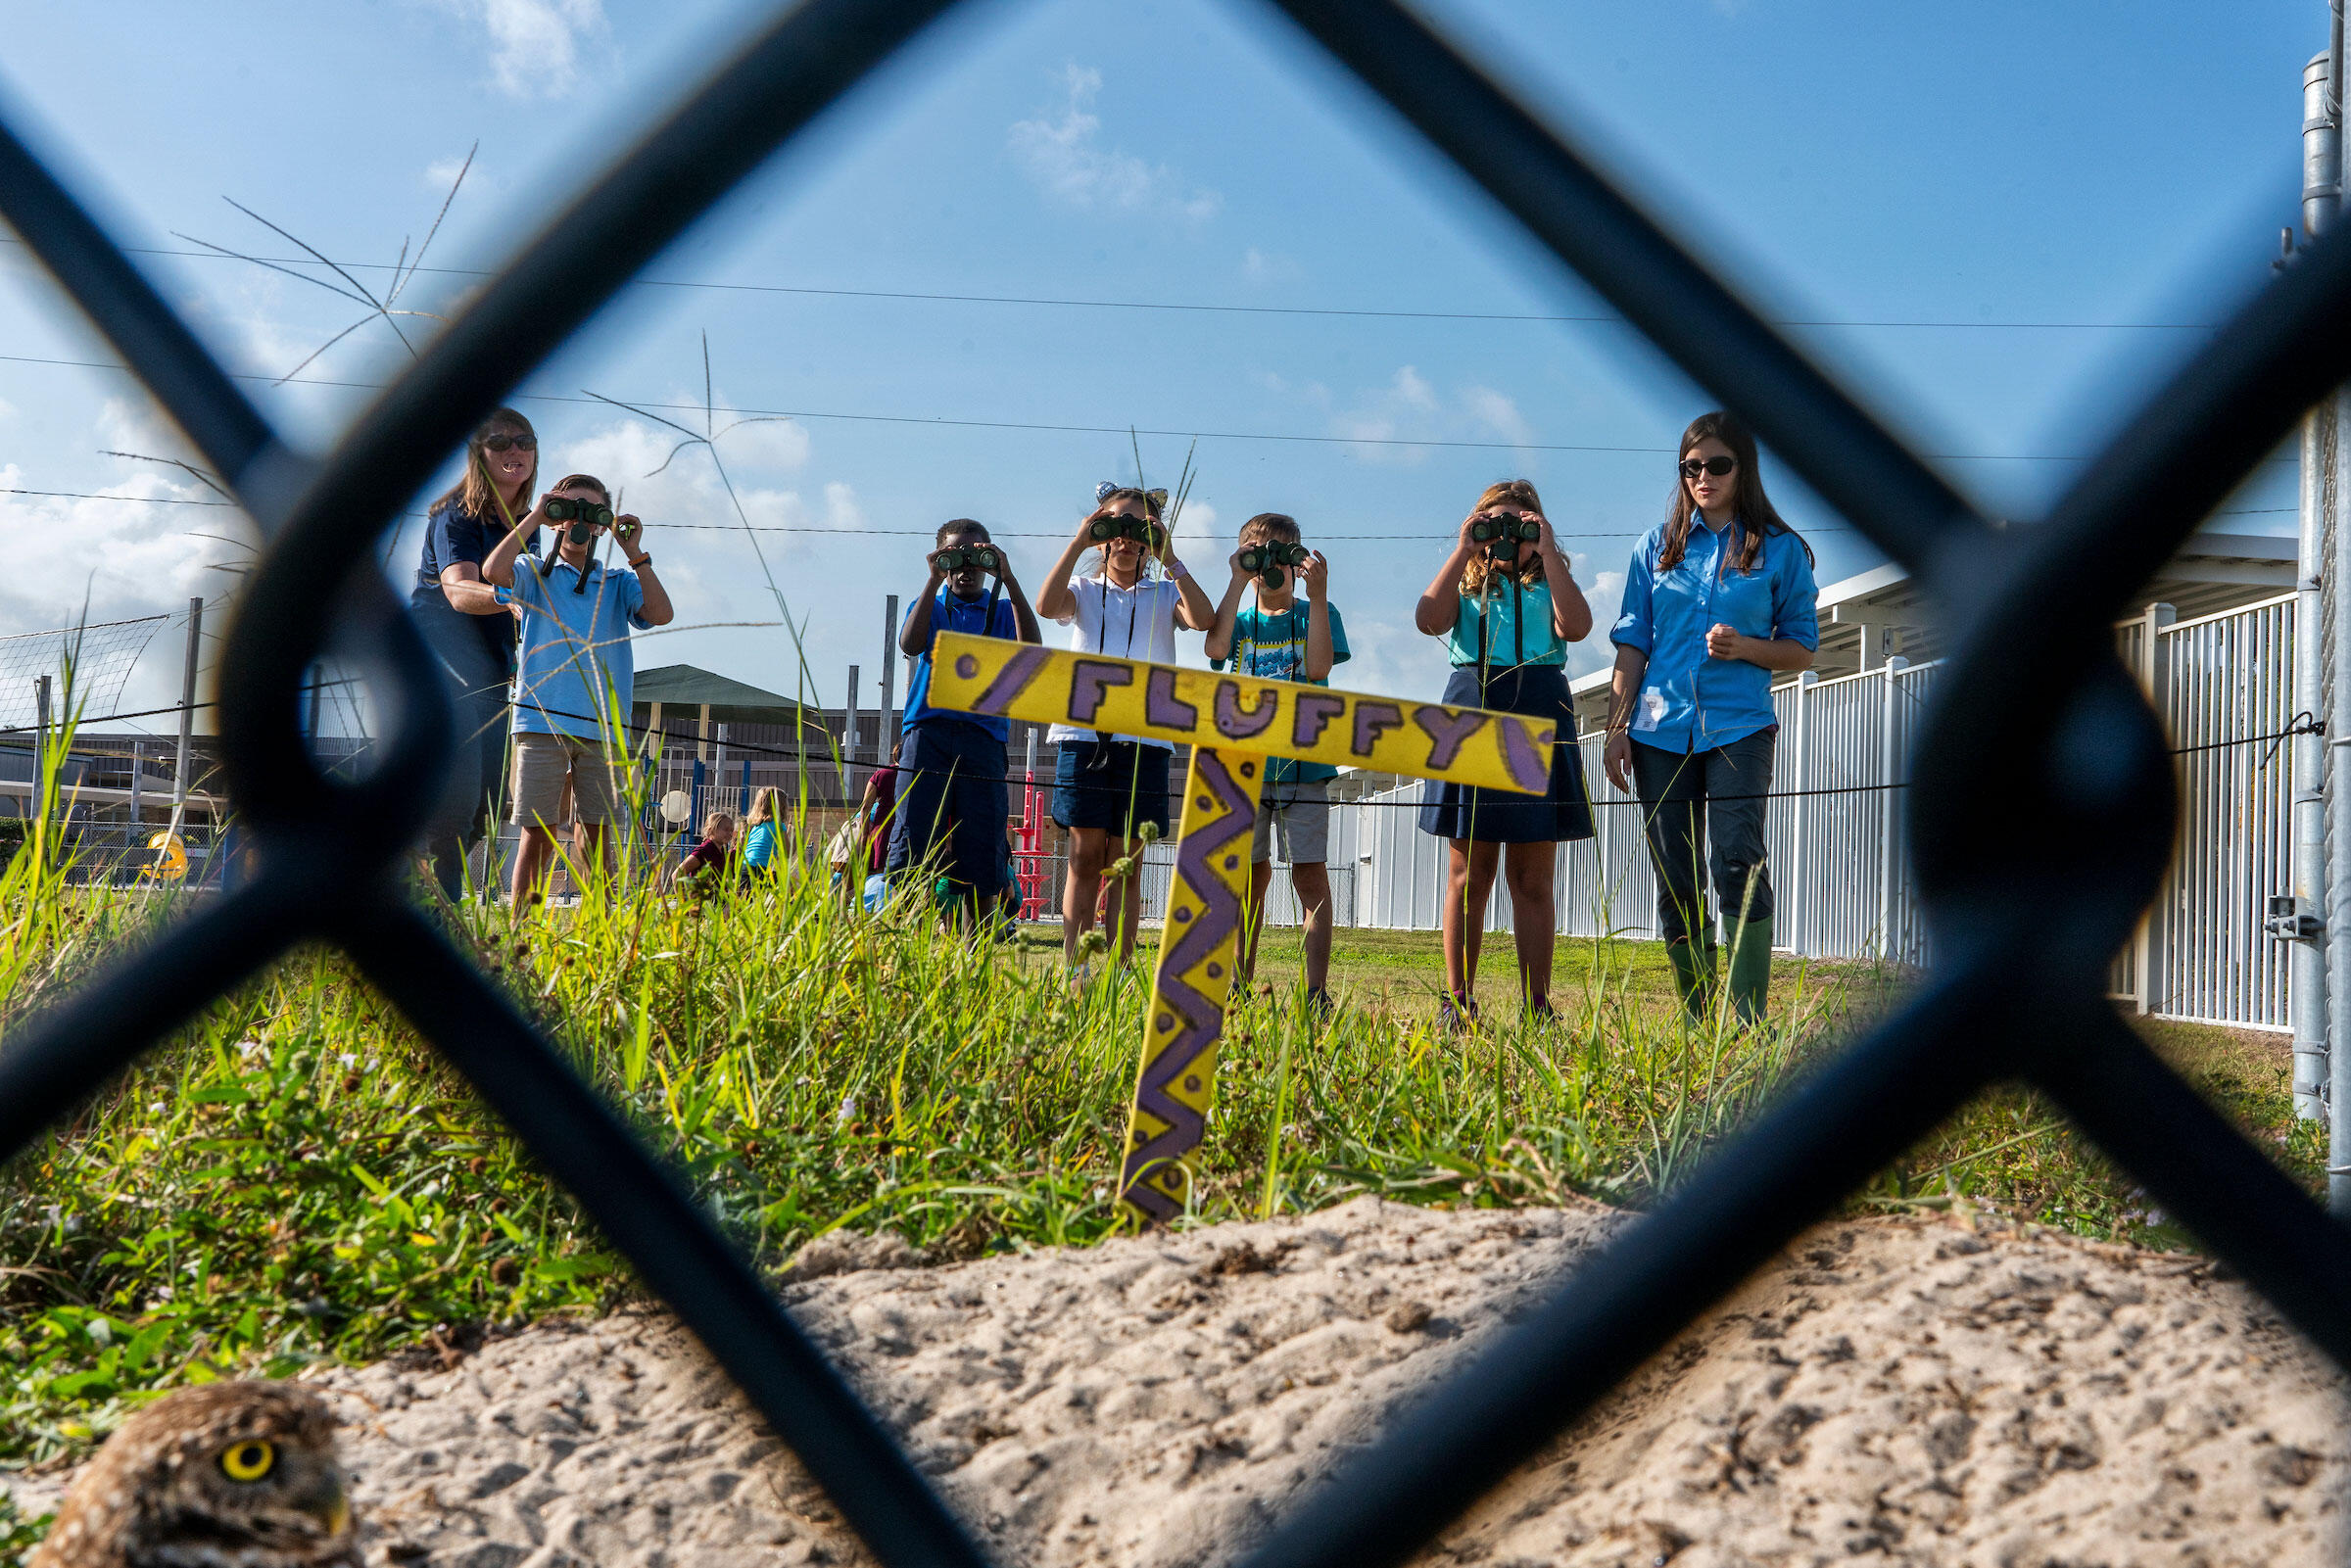 Students at Tommie Barfield Elementary monitor the owls on the school property. Karine Aigner